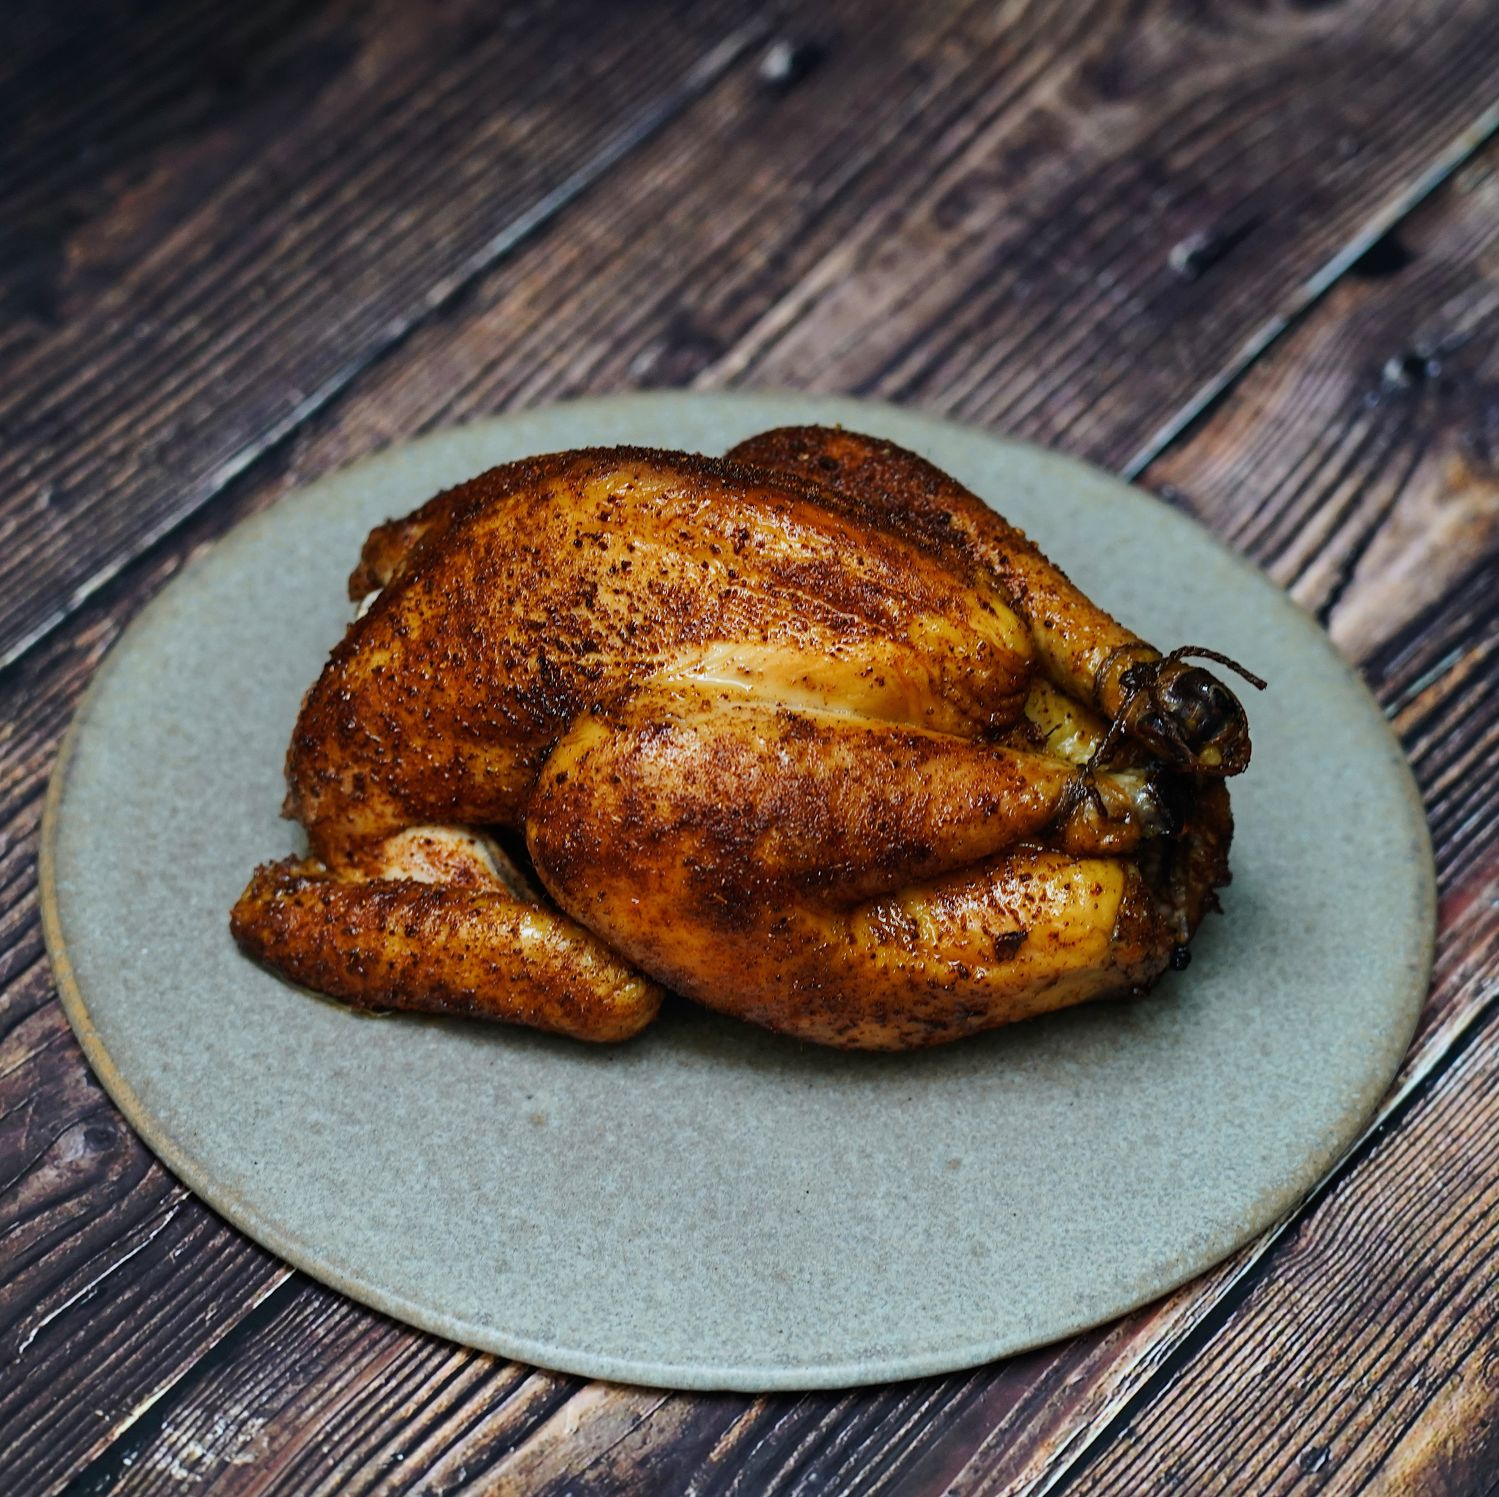 Salted Hung Takeaway Delivery Smoked Whole Chicken - THE EDGE SINGAPORE